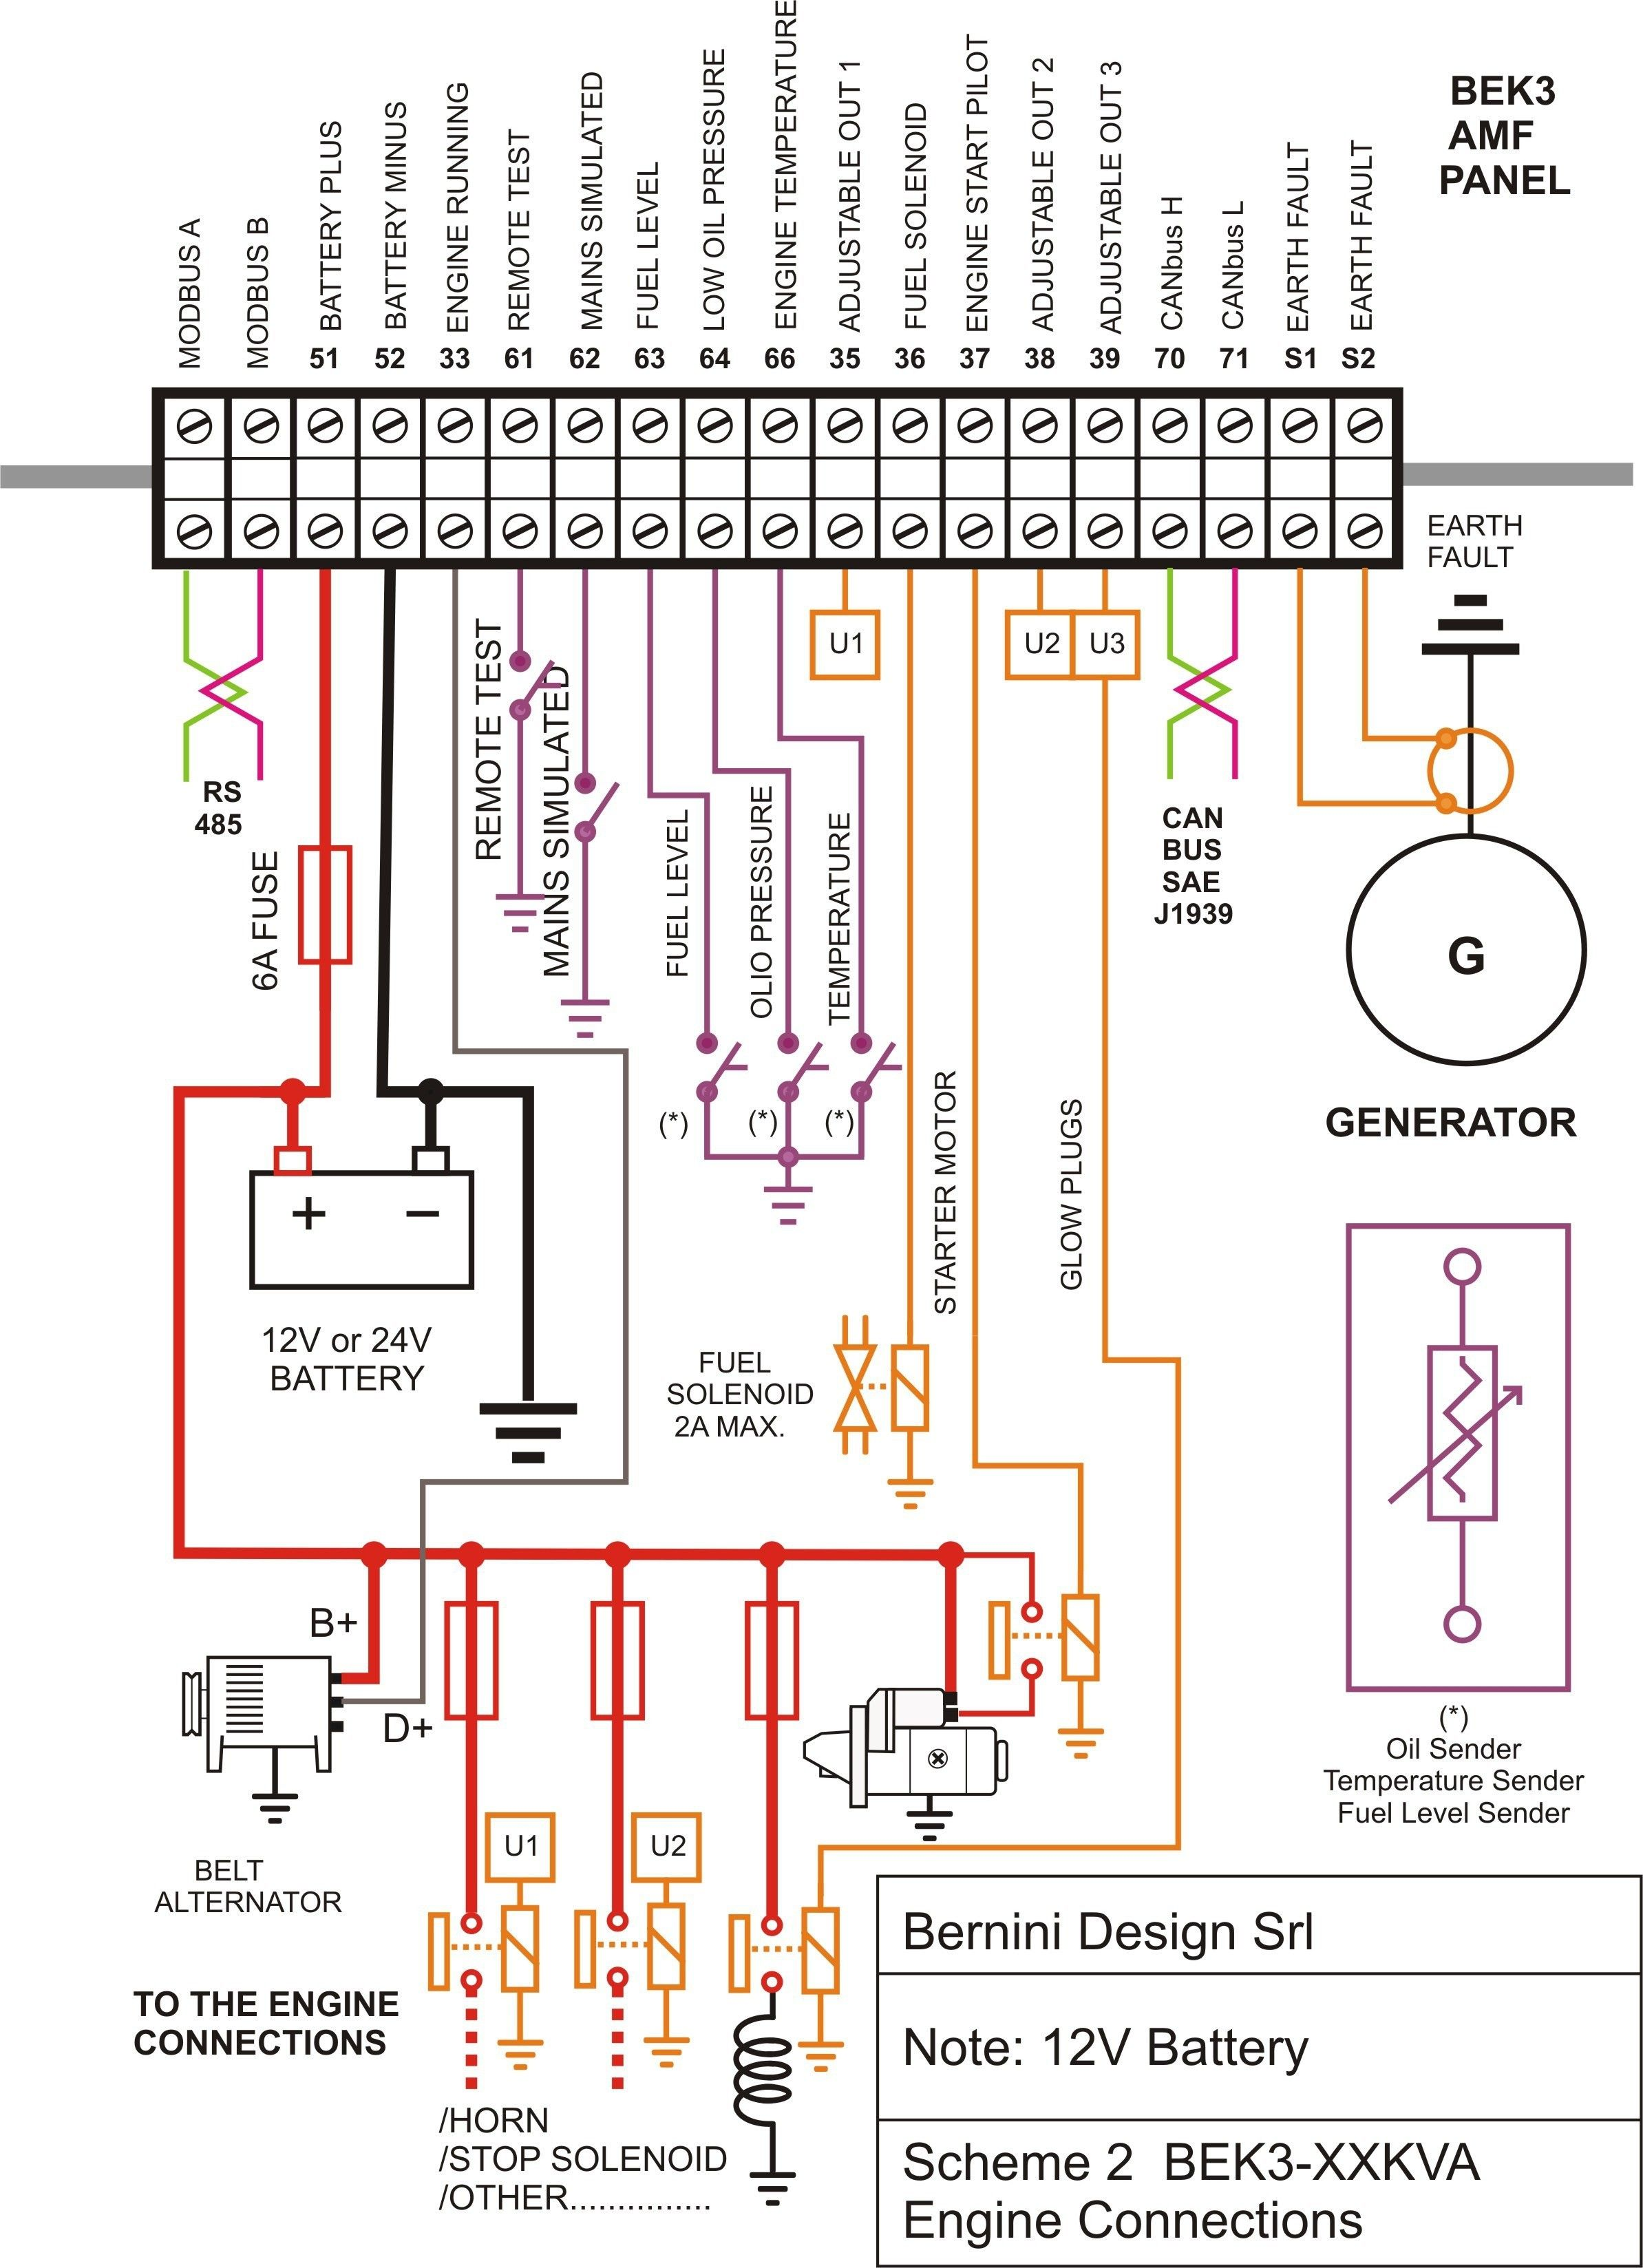 New Electrical Control Panel Wiring Diagram Diagram Wiringdiagram Diagramming Electrical Circuit Diagram Electrical Wiring Diagram Electrical Panel Wiring